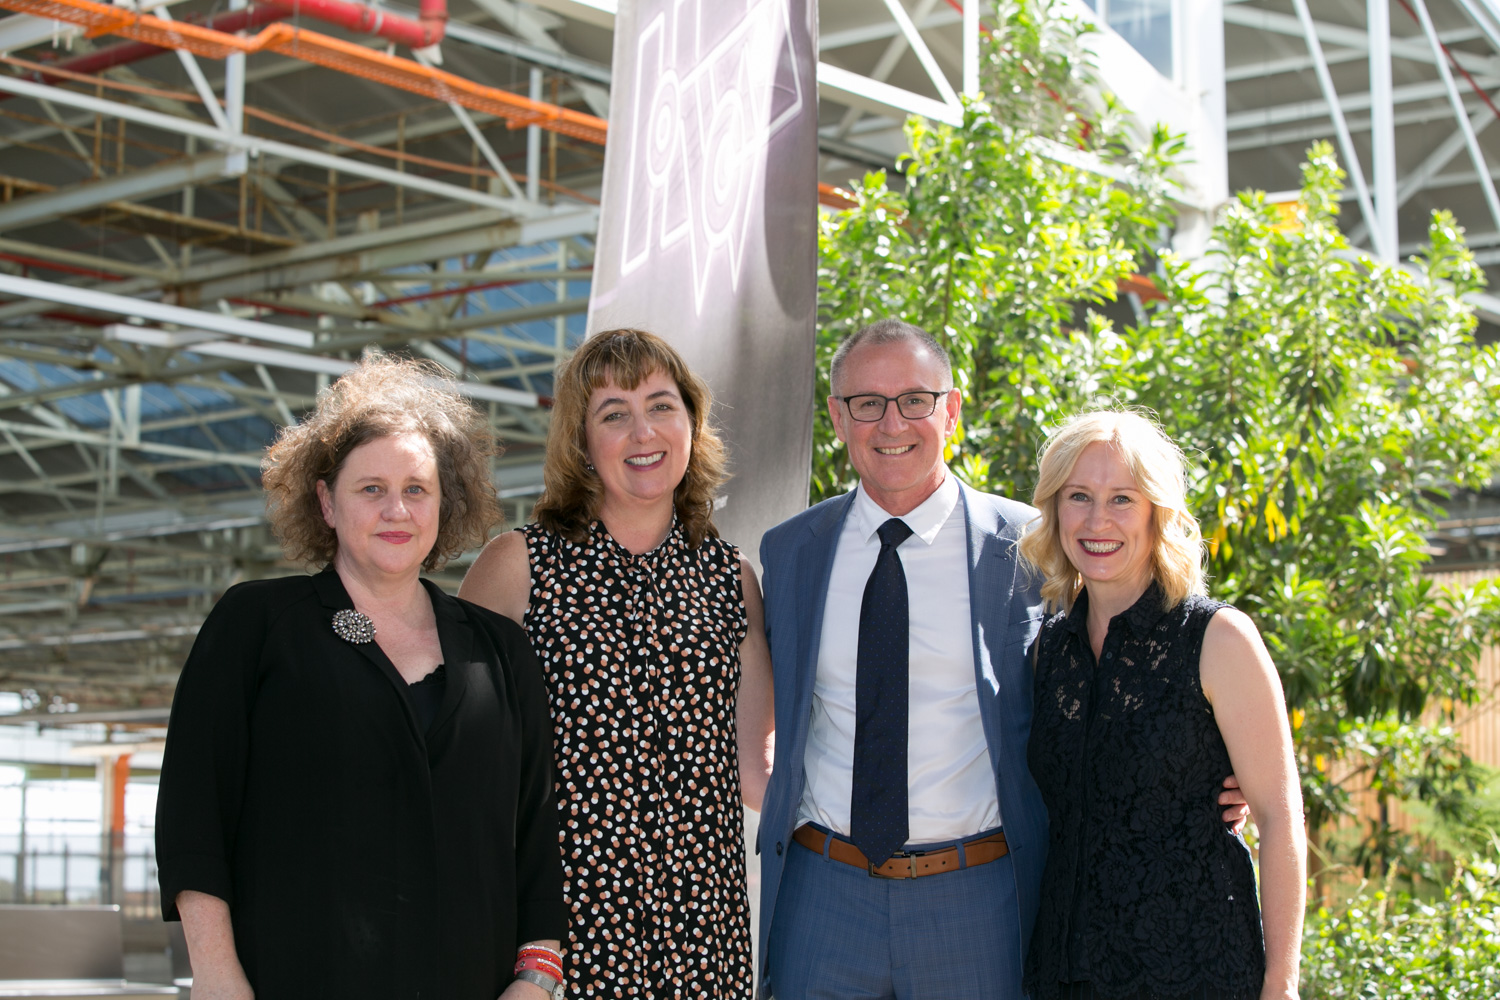 Amanda Duthie - CEO of Adelaide Film Festival, Janet Gaeta - Creative Director of Hybrid World Adelaide, Premier of South Australia Jay Weatherill and Sandra Sdraulig - Chair of Adelaide Film Festival_Web.jpg